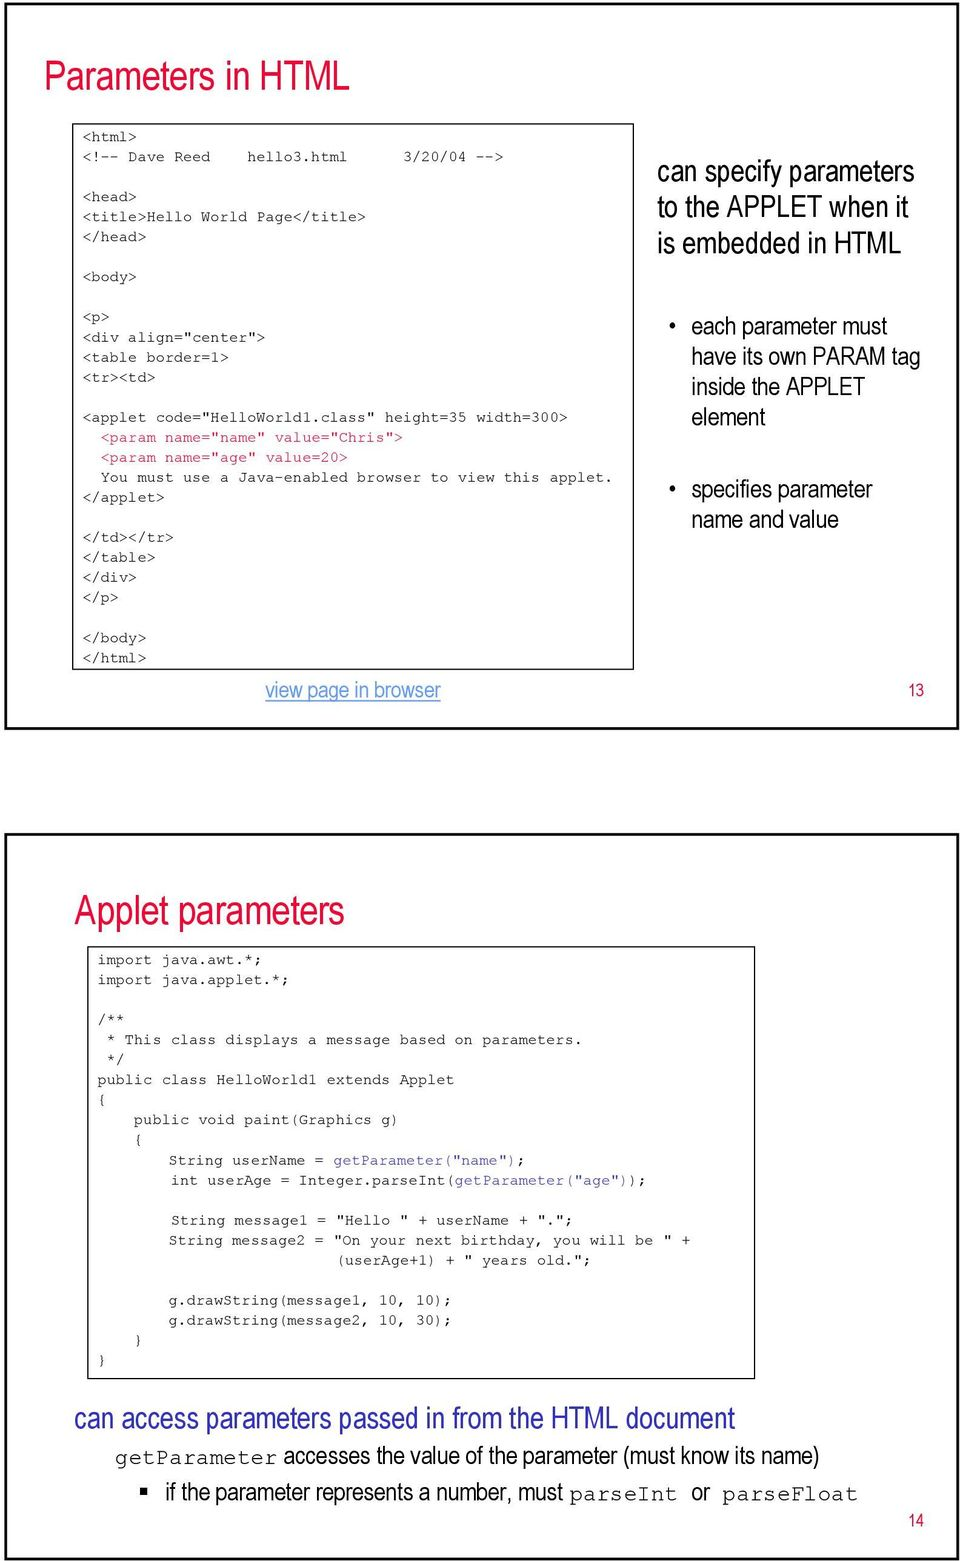 </applet> </td></tr> </table> </div> </p> can specify parameters to the APPLET when it is embedded in HTML each parameter must have its own PARAM tag inside the APPLET element specifies parameter